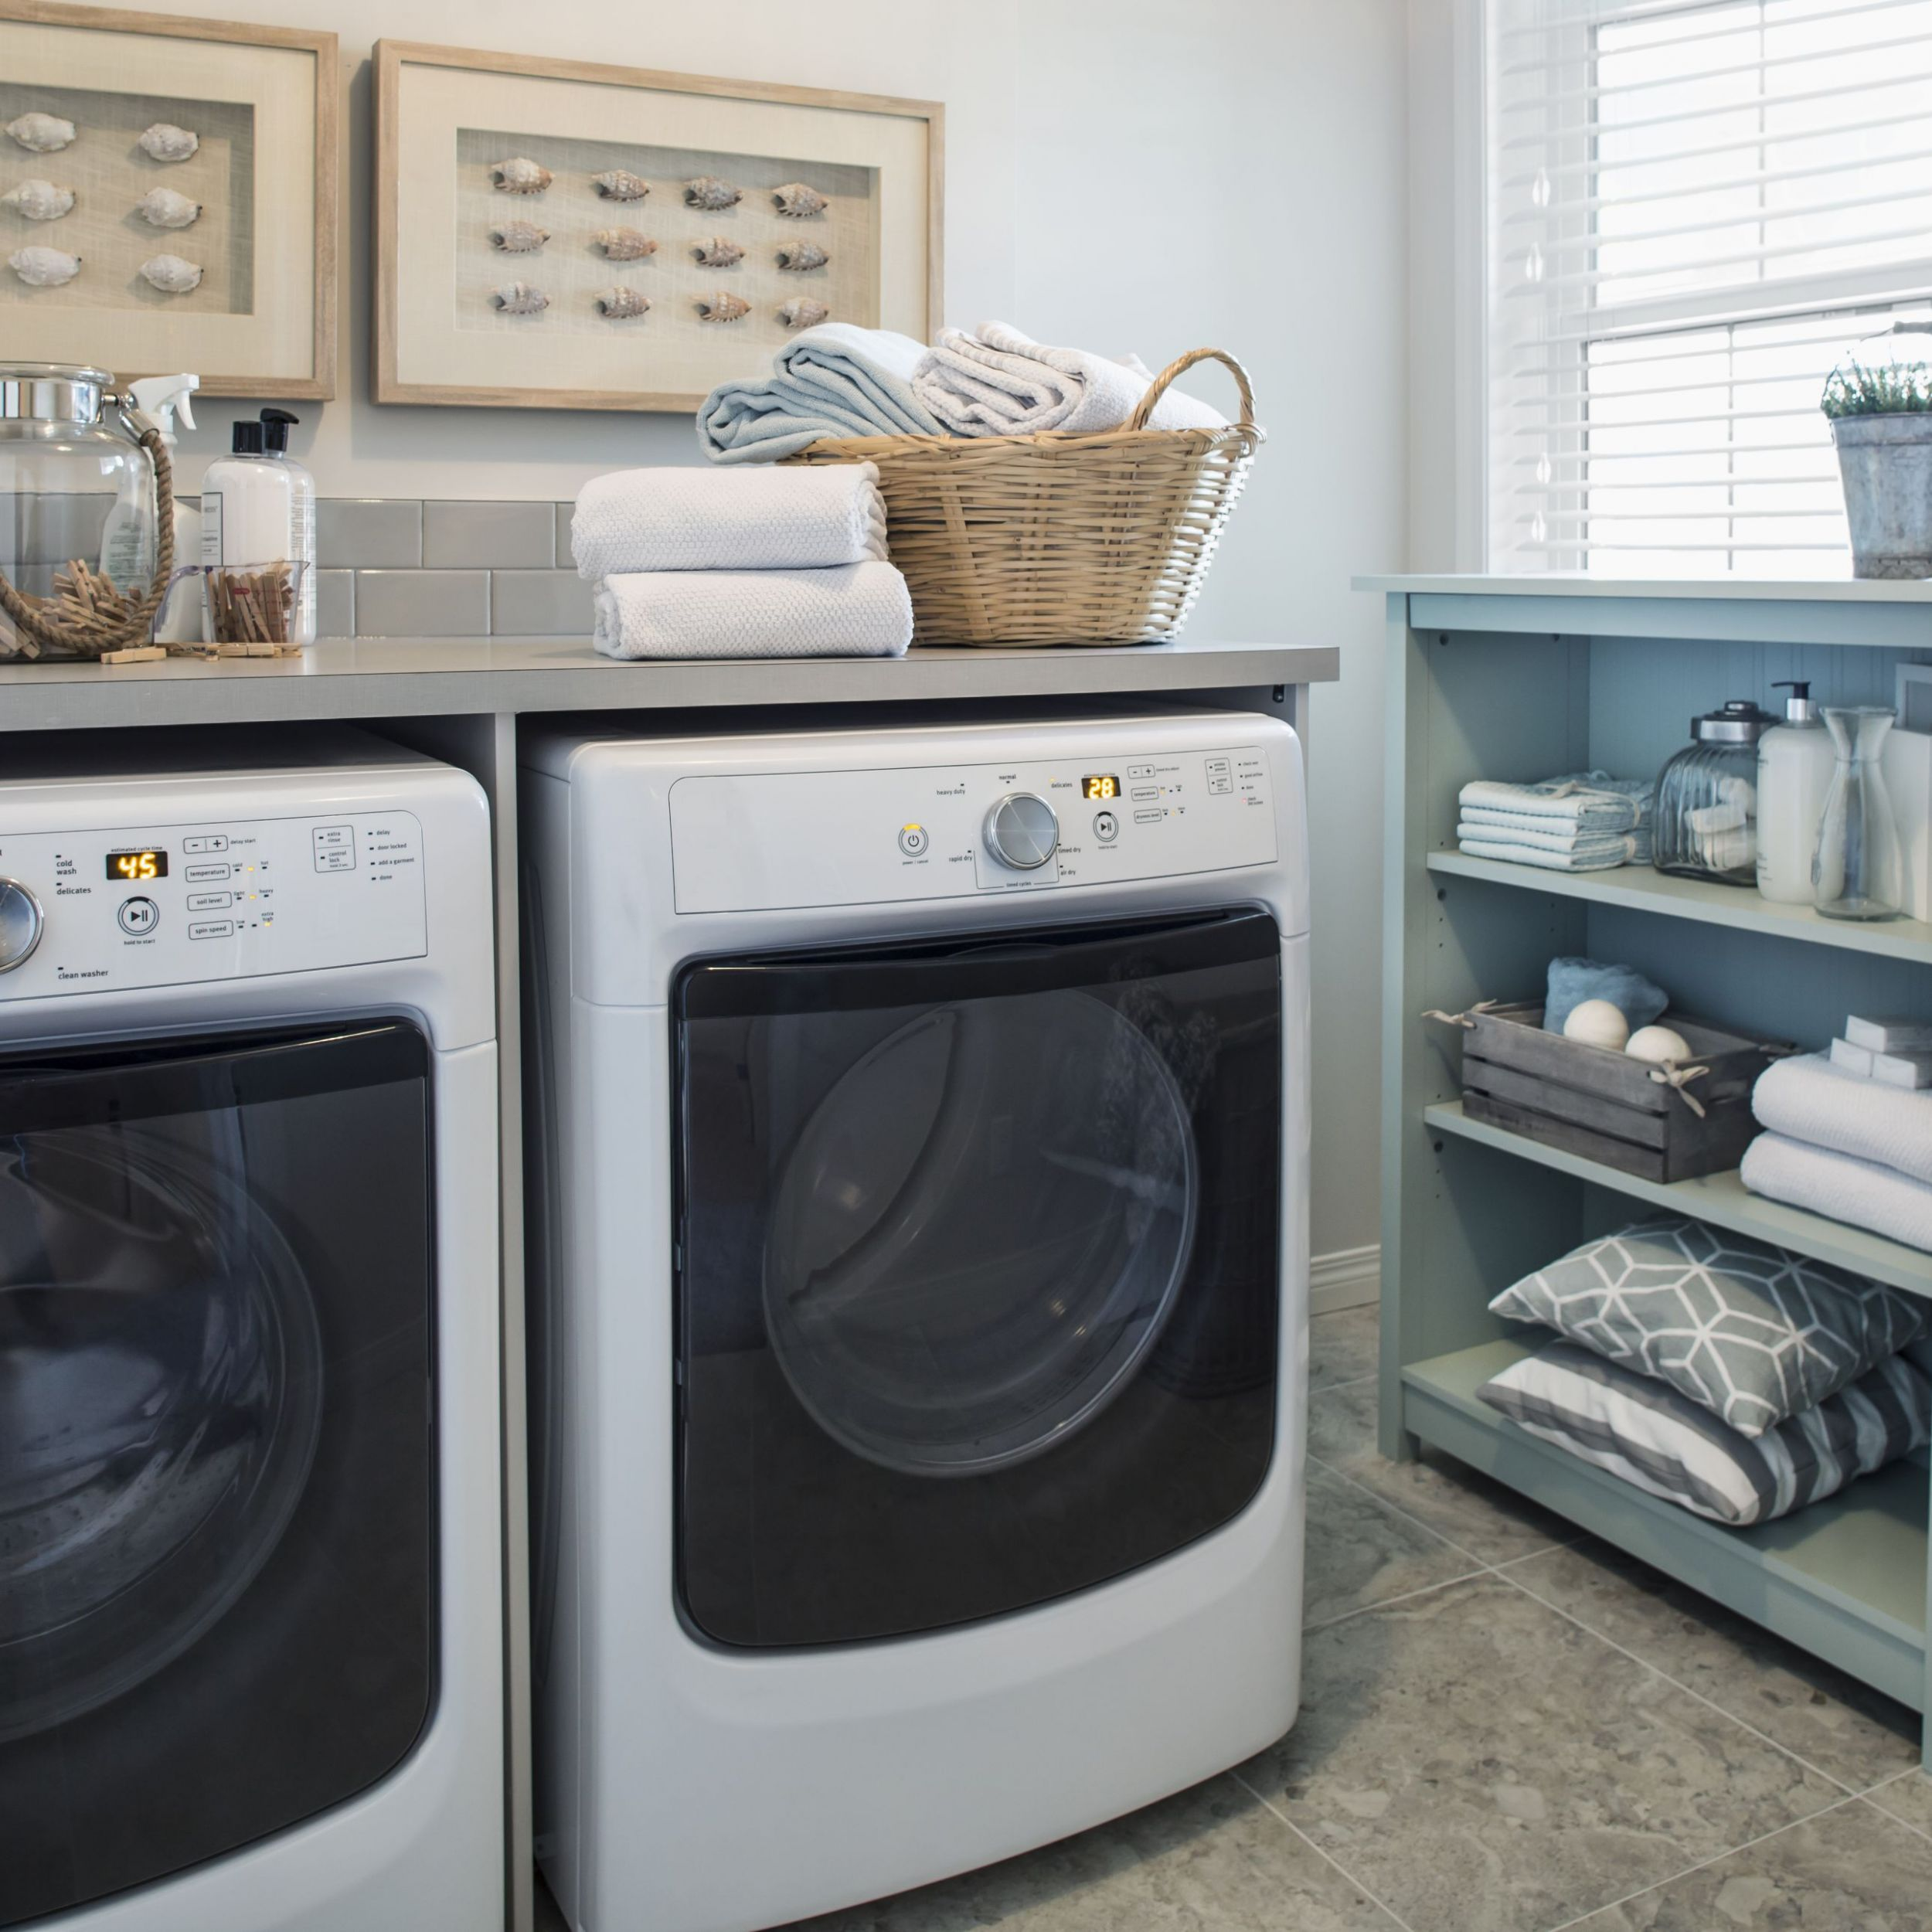 Building and Design Specifications for a Laundry Room - laundry room ideas for top loading washers